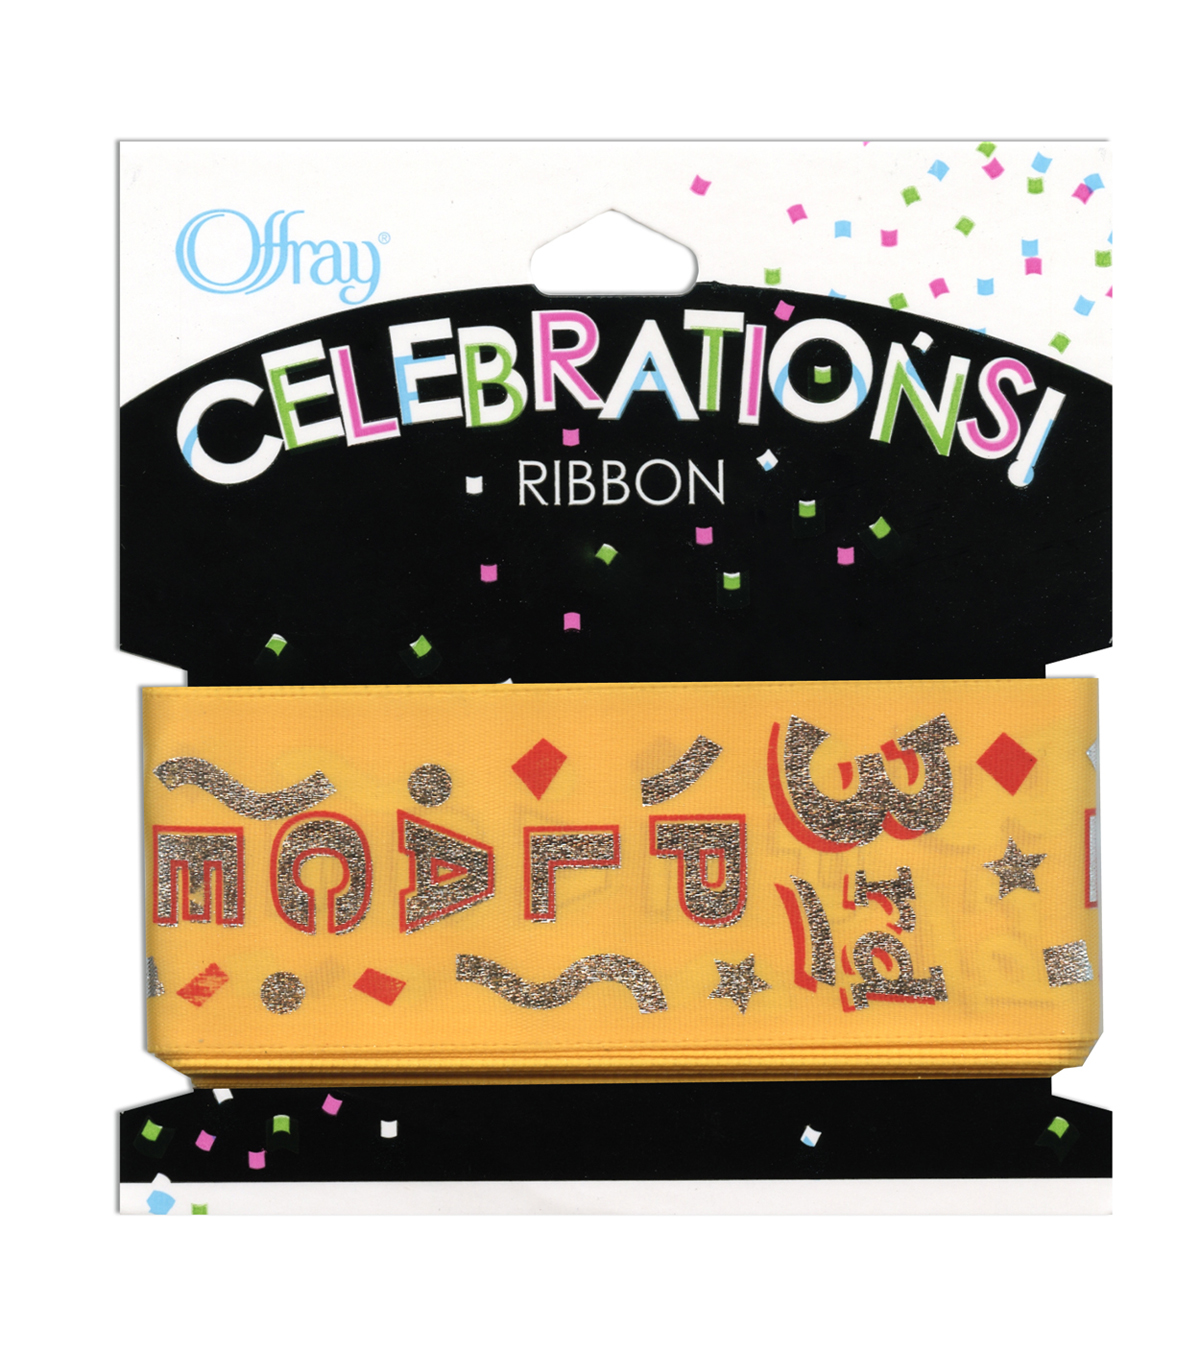 "Offray Celebrations Ribbon, 1.5"" x 9', 3rd Place"